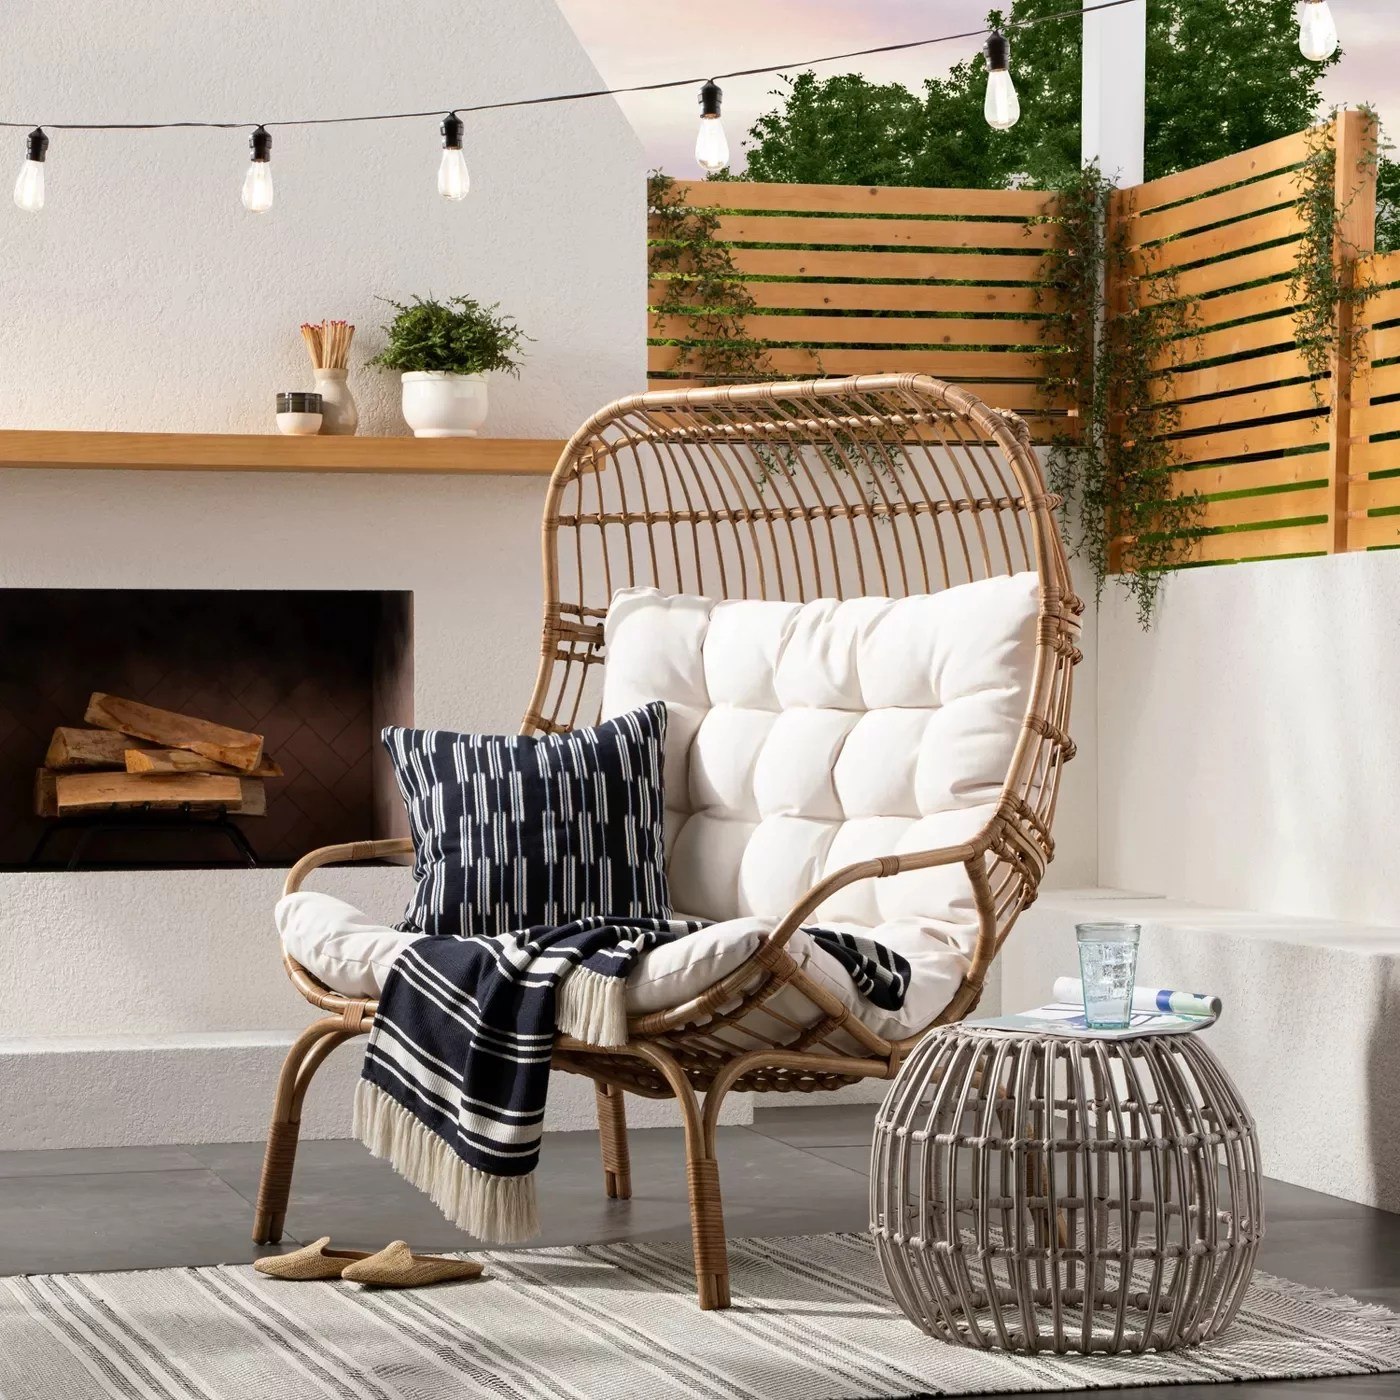 best outdoor furniture at target 2021